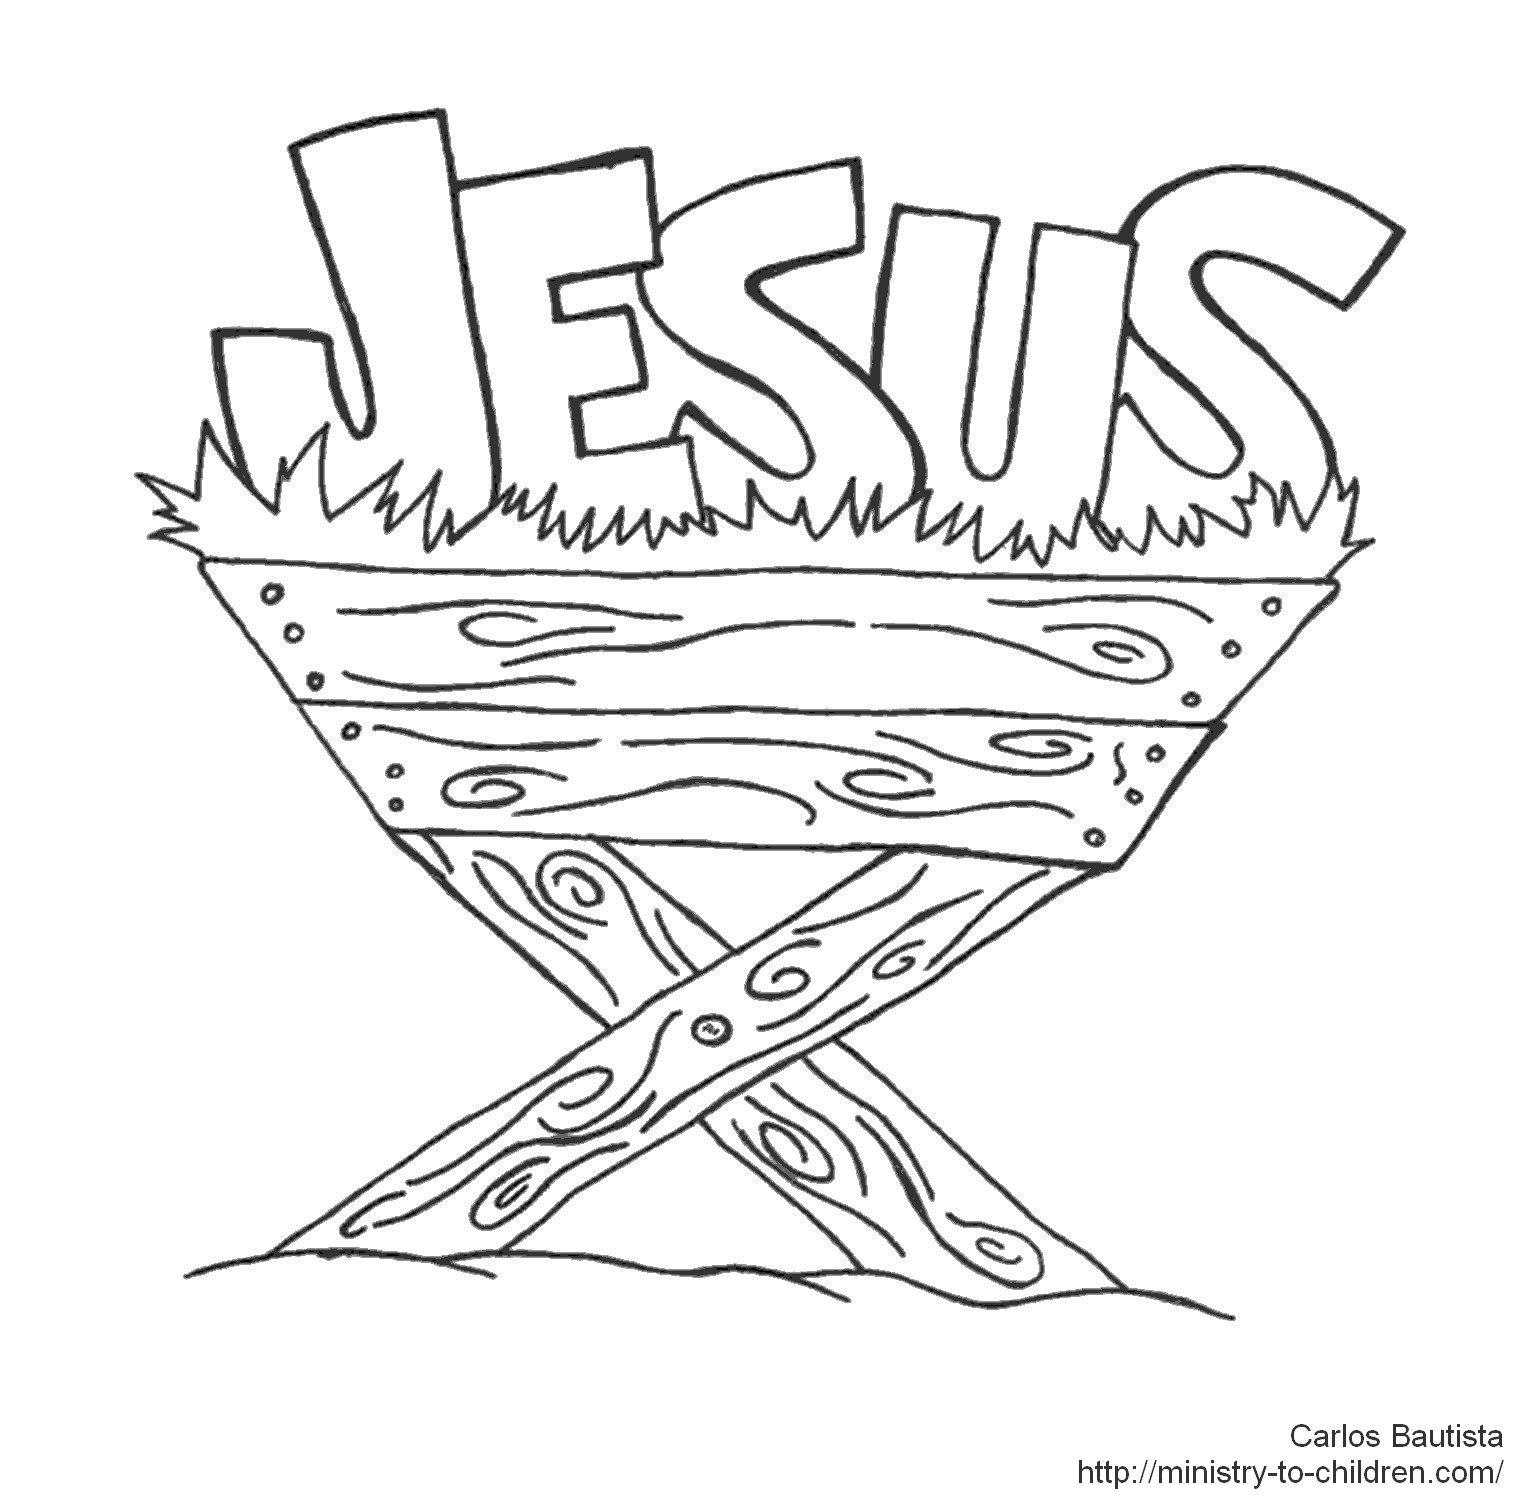 baby jesus in a manger coloring pages baby jesus in the manger coloring pages to print coloring in jesus baby manger a pages